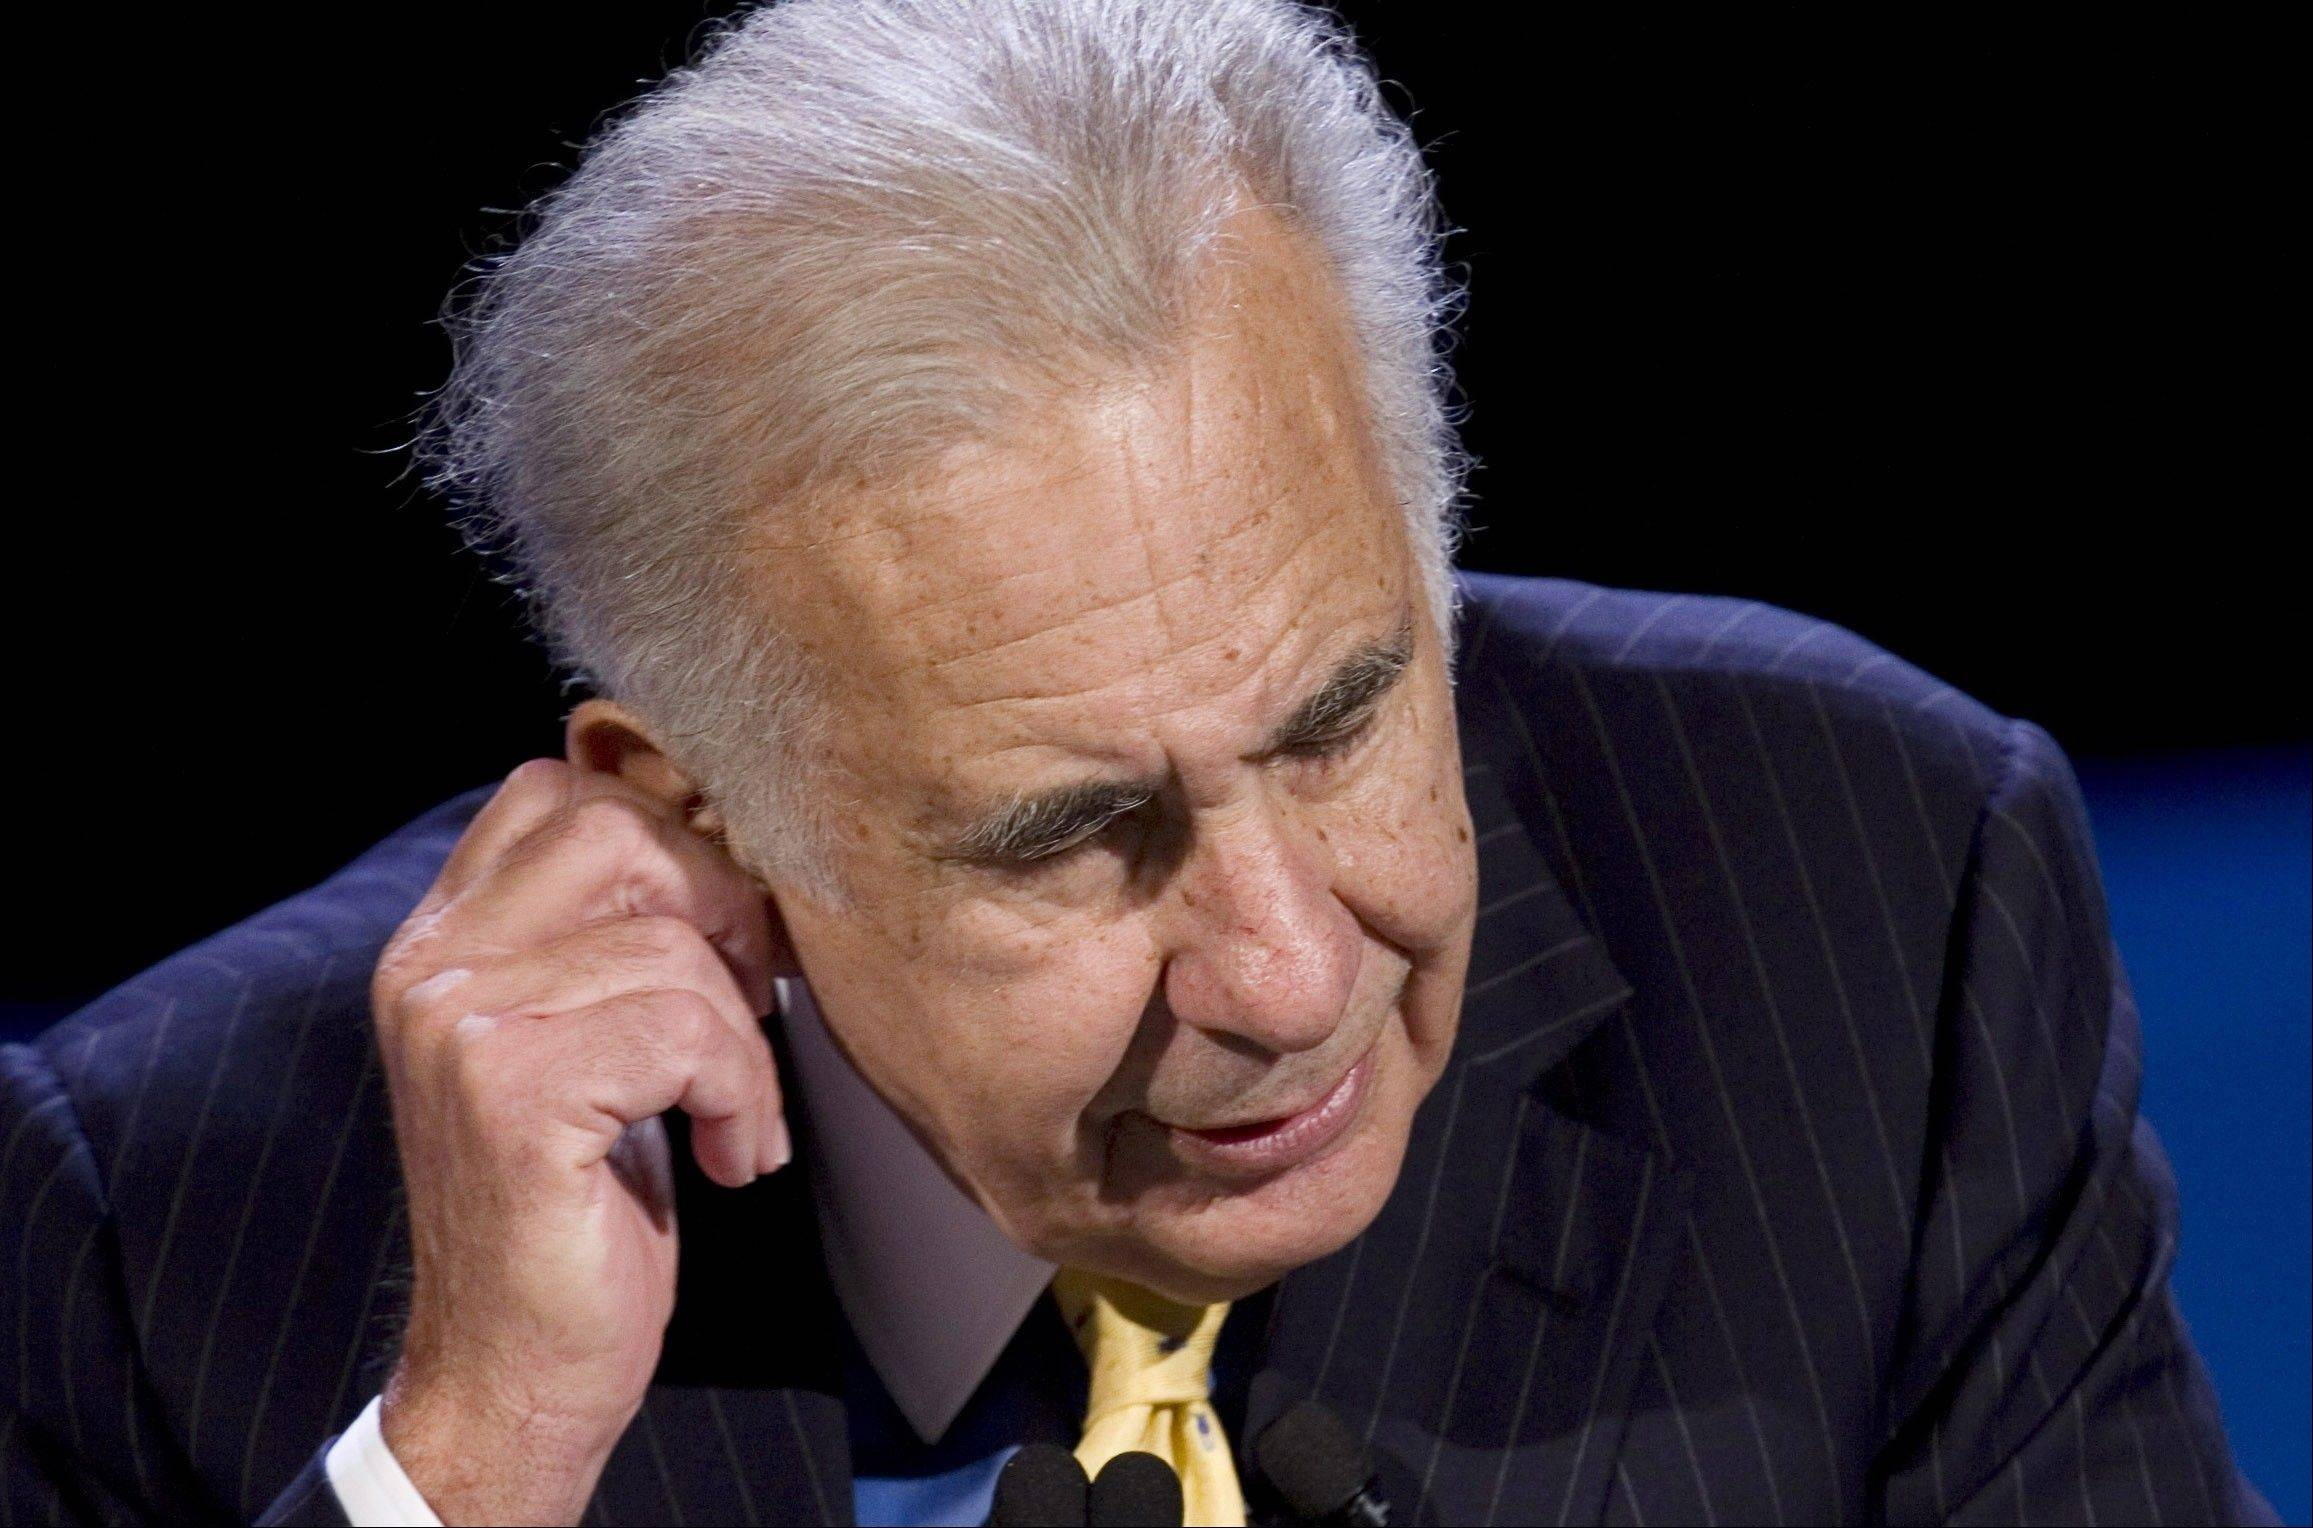 Billionaire investor Carl Icahn said Tuesday, Dec. 4, 2012, he is giving up his bid to buy truck maker Oshkosh after less than 25 percent of the company�s shares were tendered before his offer expired.